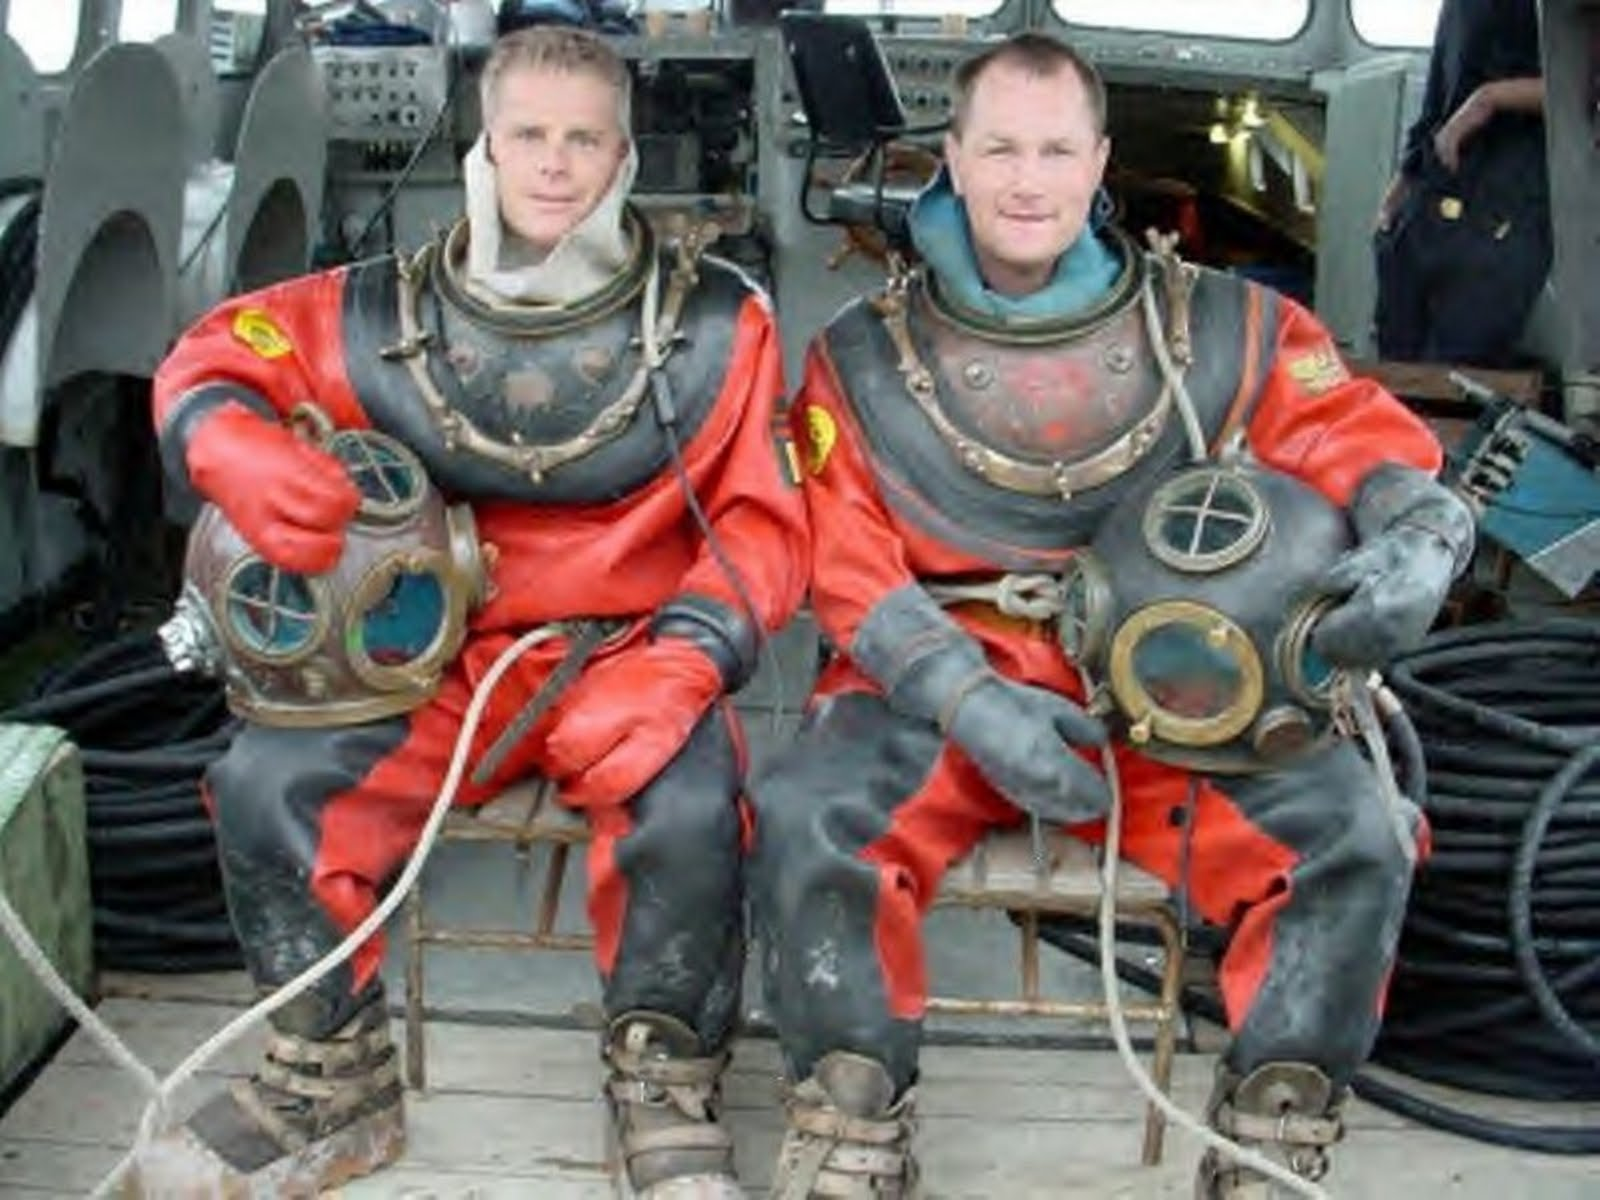 gay rubberist divers france ... of which amaze me,perhaps more for the